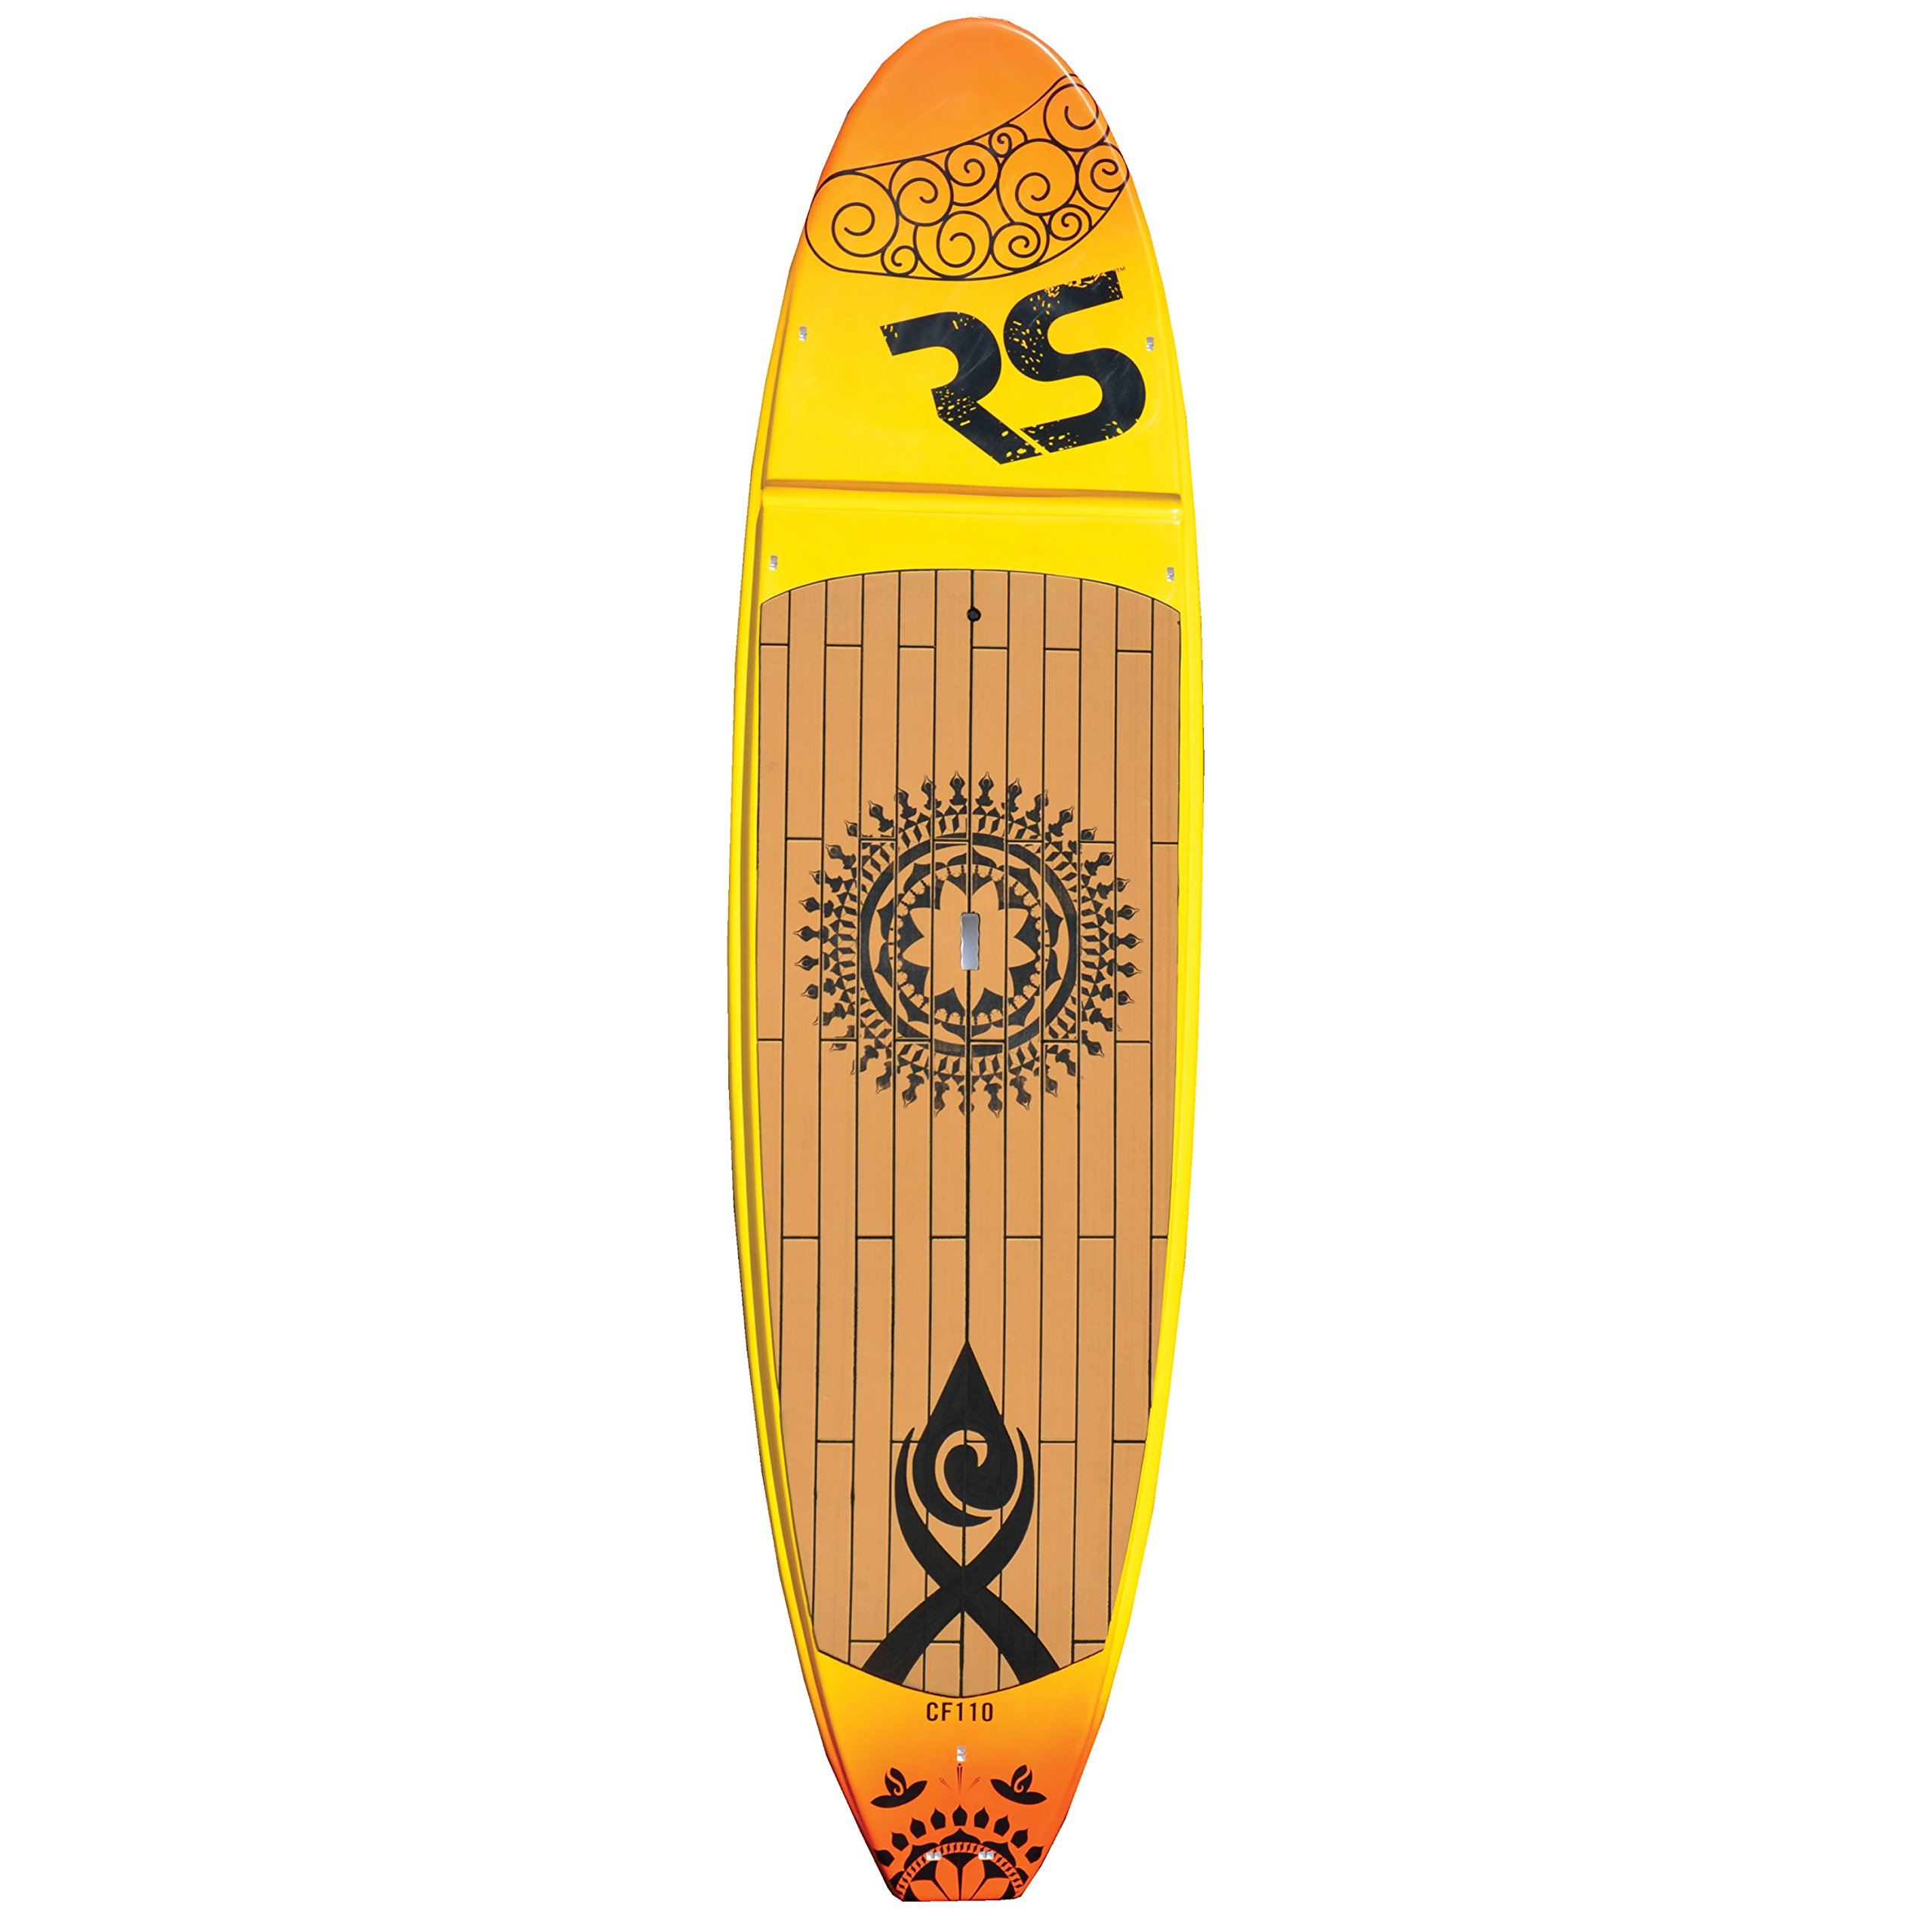 RAVE 2689 Core Crossfit SUP for Yoga & X-Training - Sunset Gold, 11'